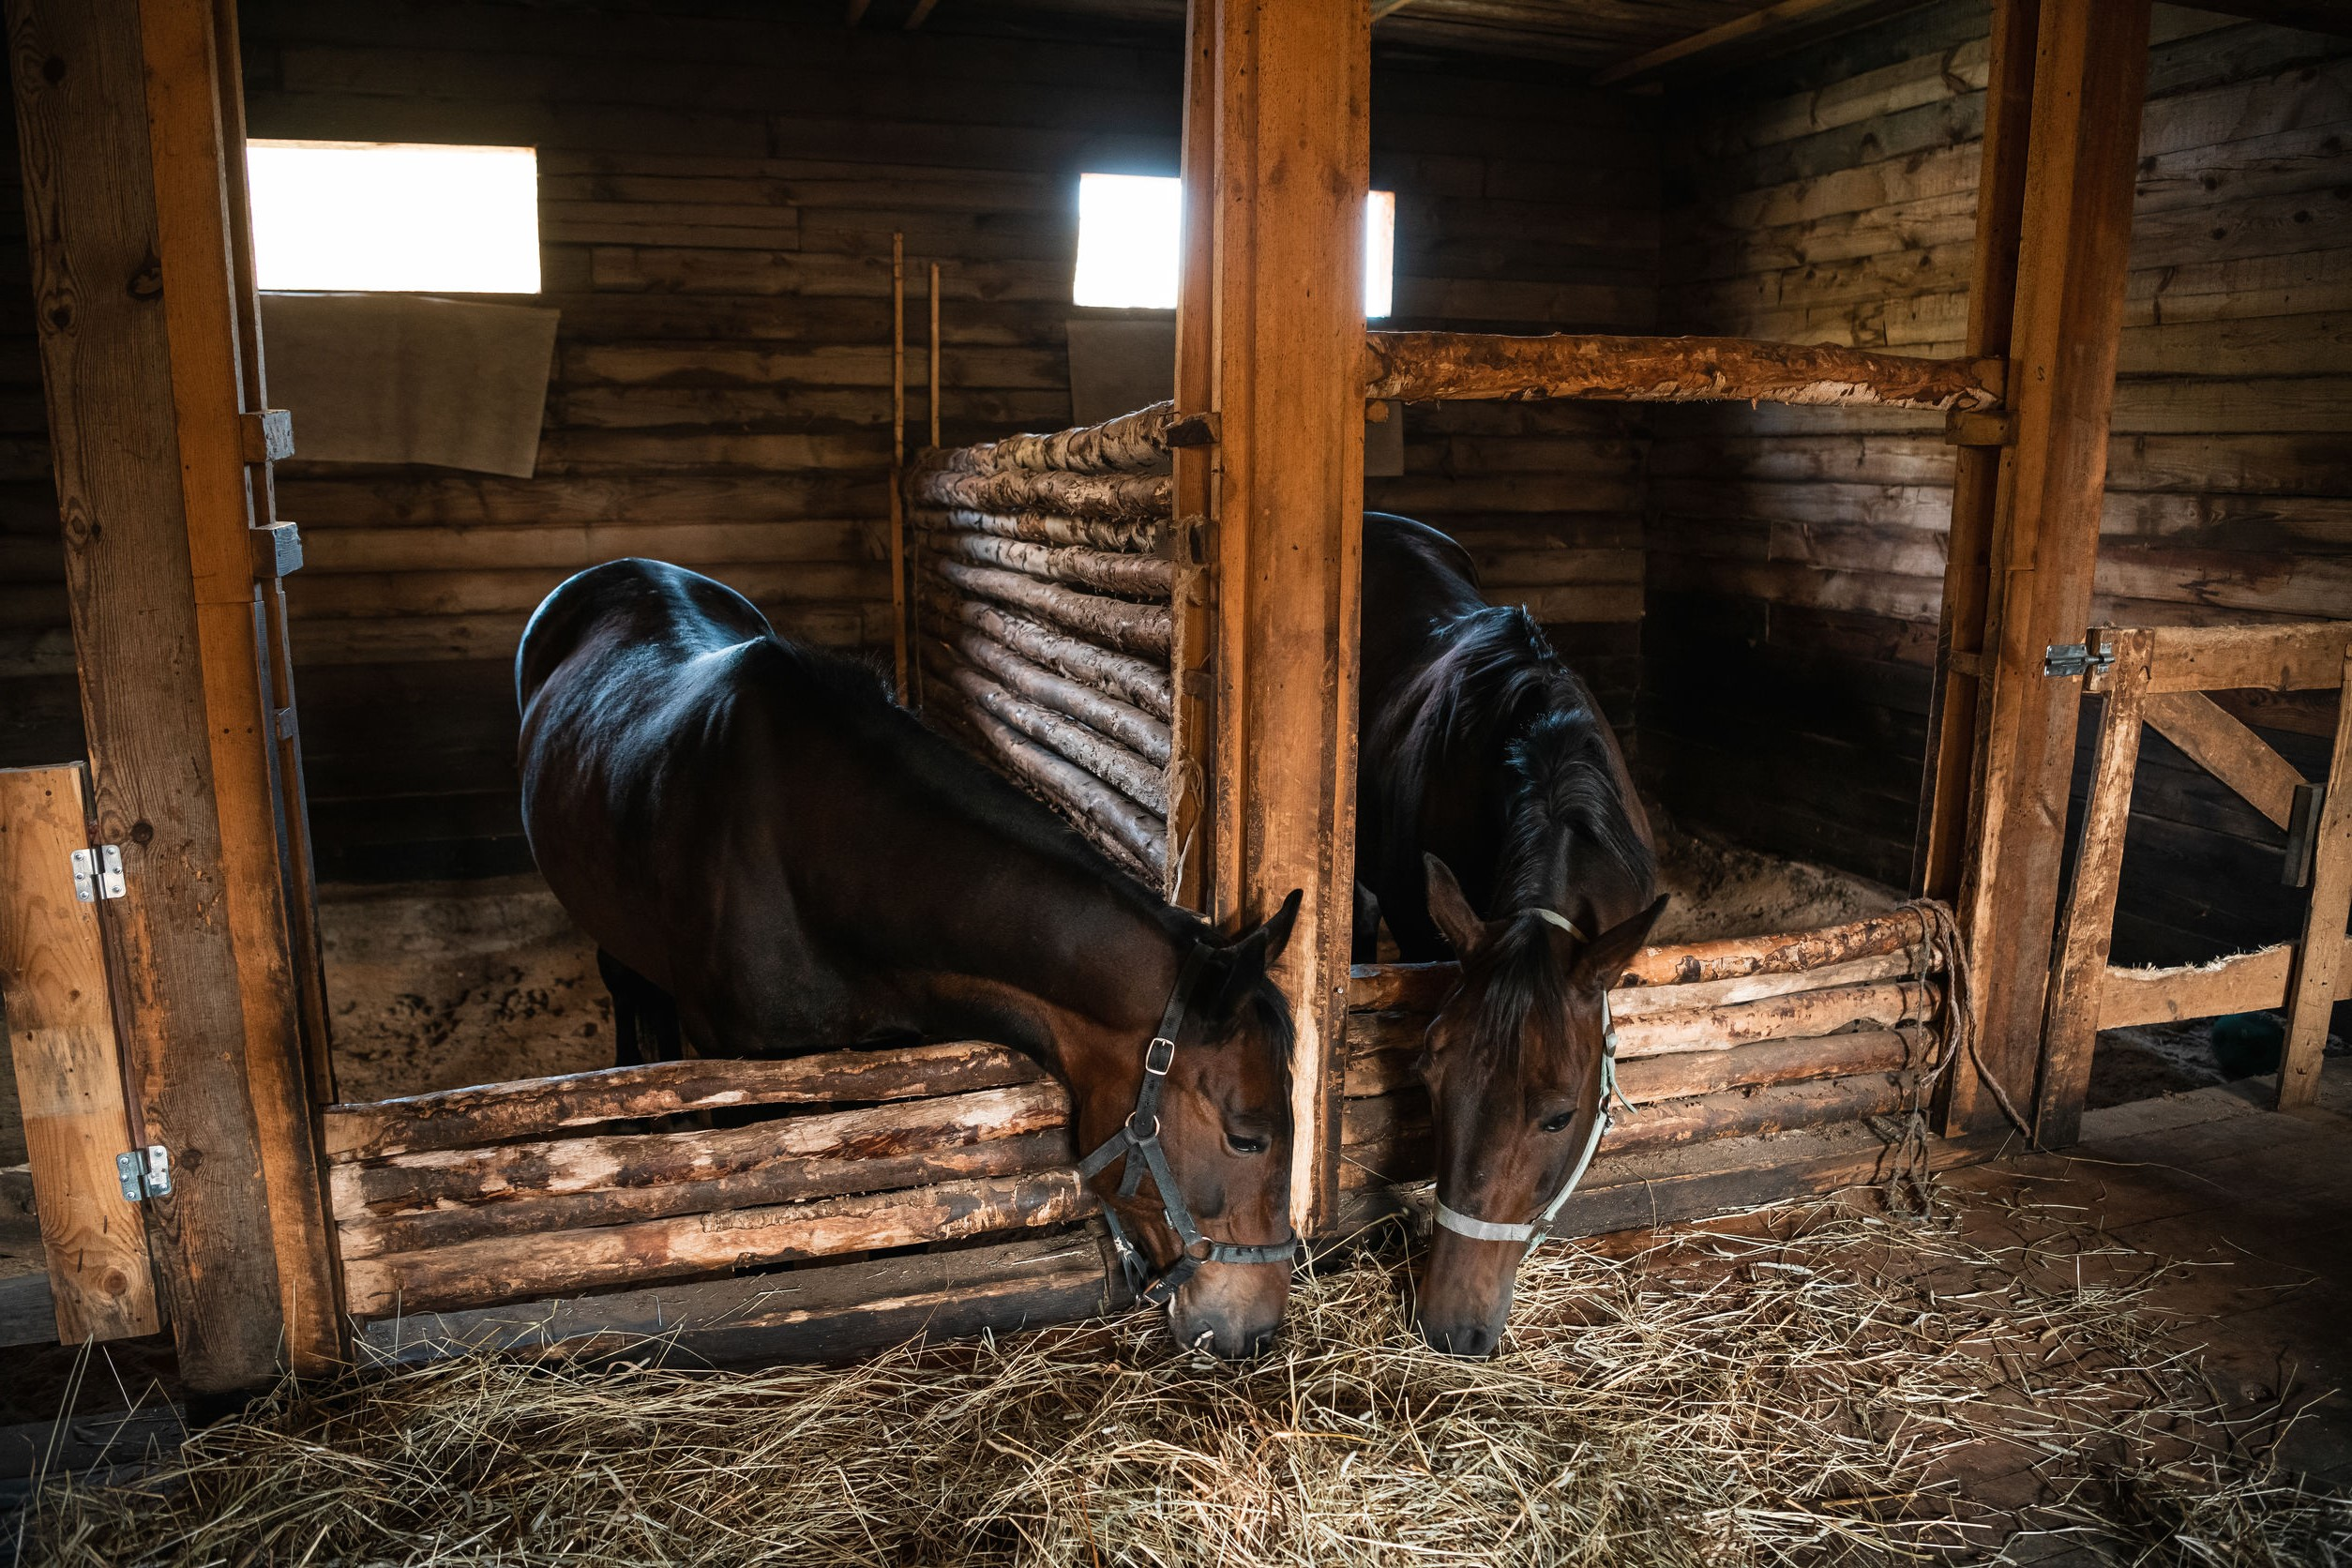 In a wooden stable, horses pull their heads towards fresh hay lying on the floor